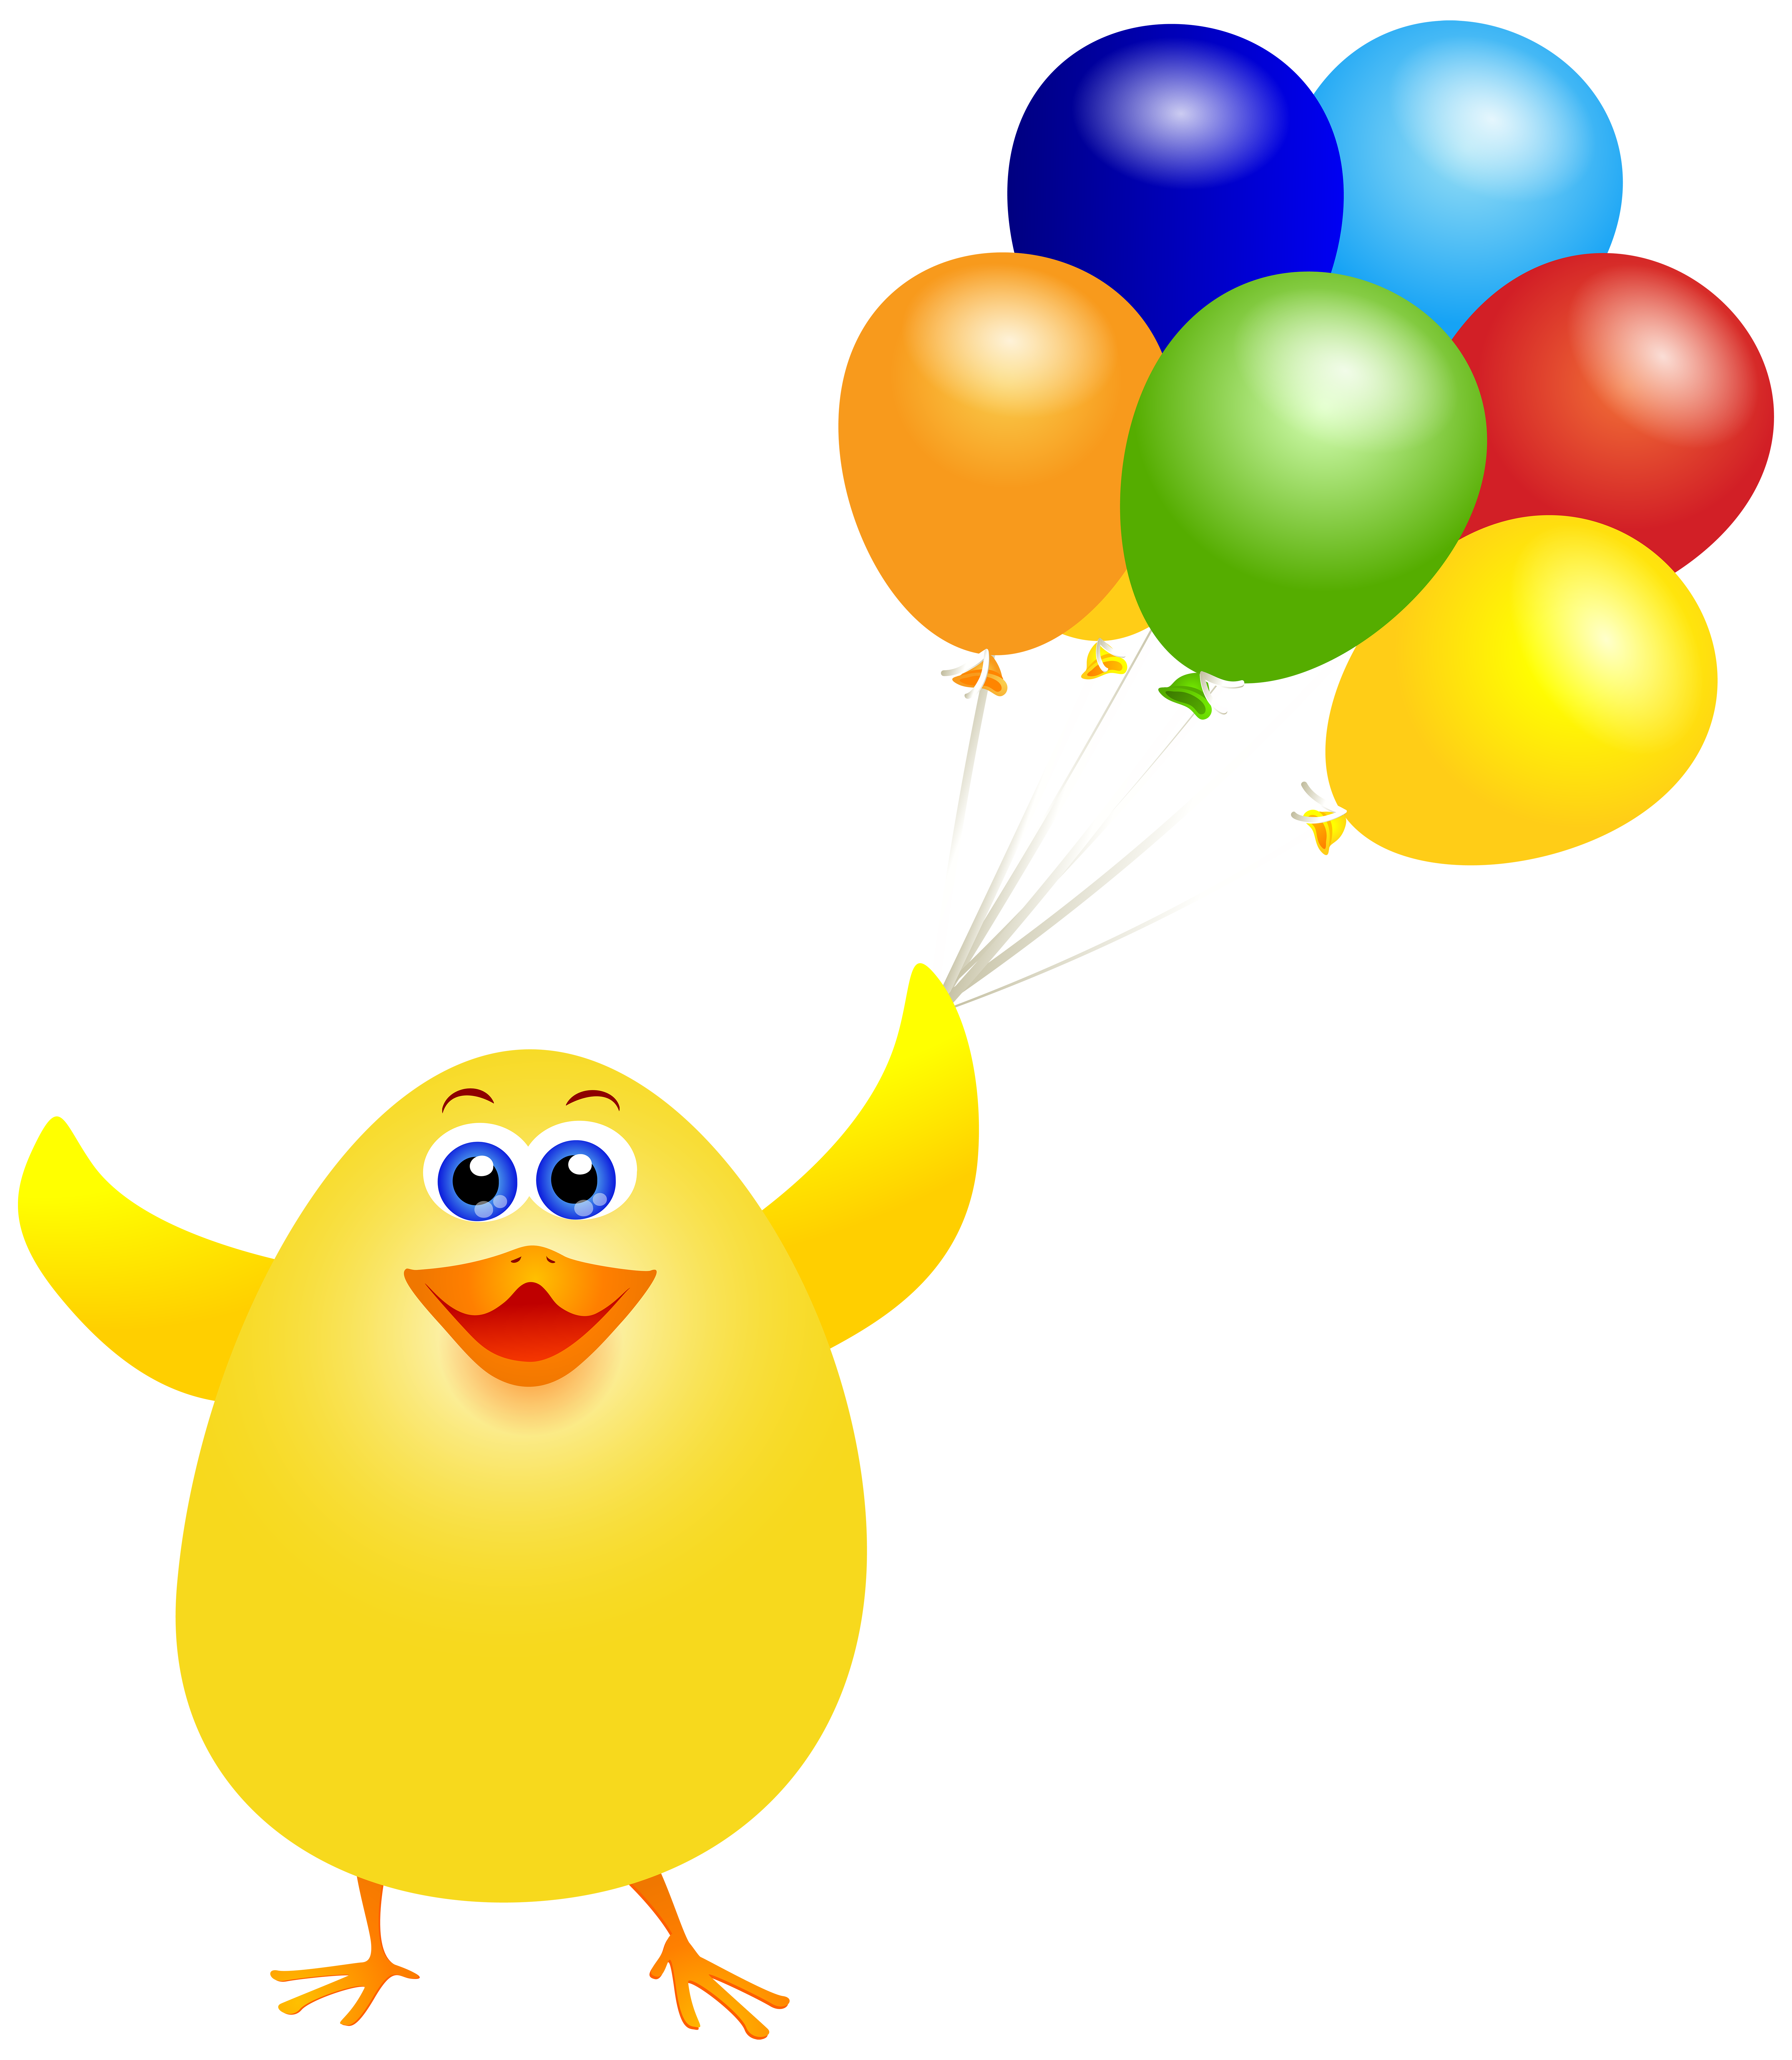 Balloon clipart easter. Chicken with balloons png